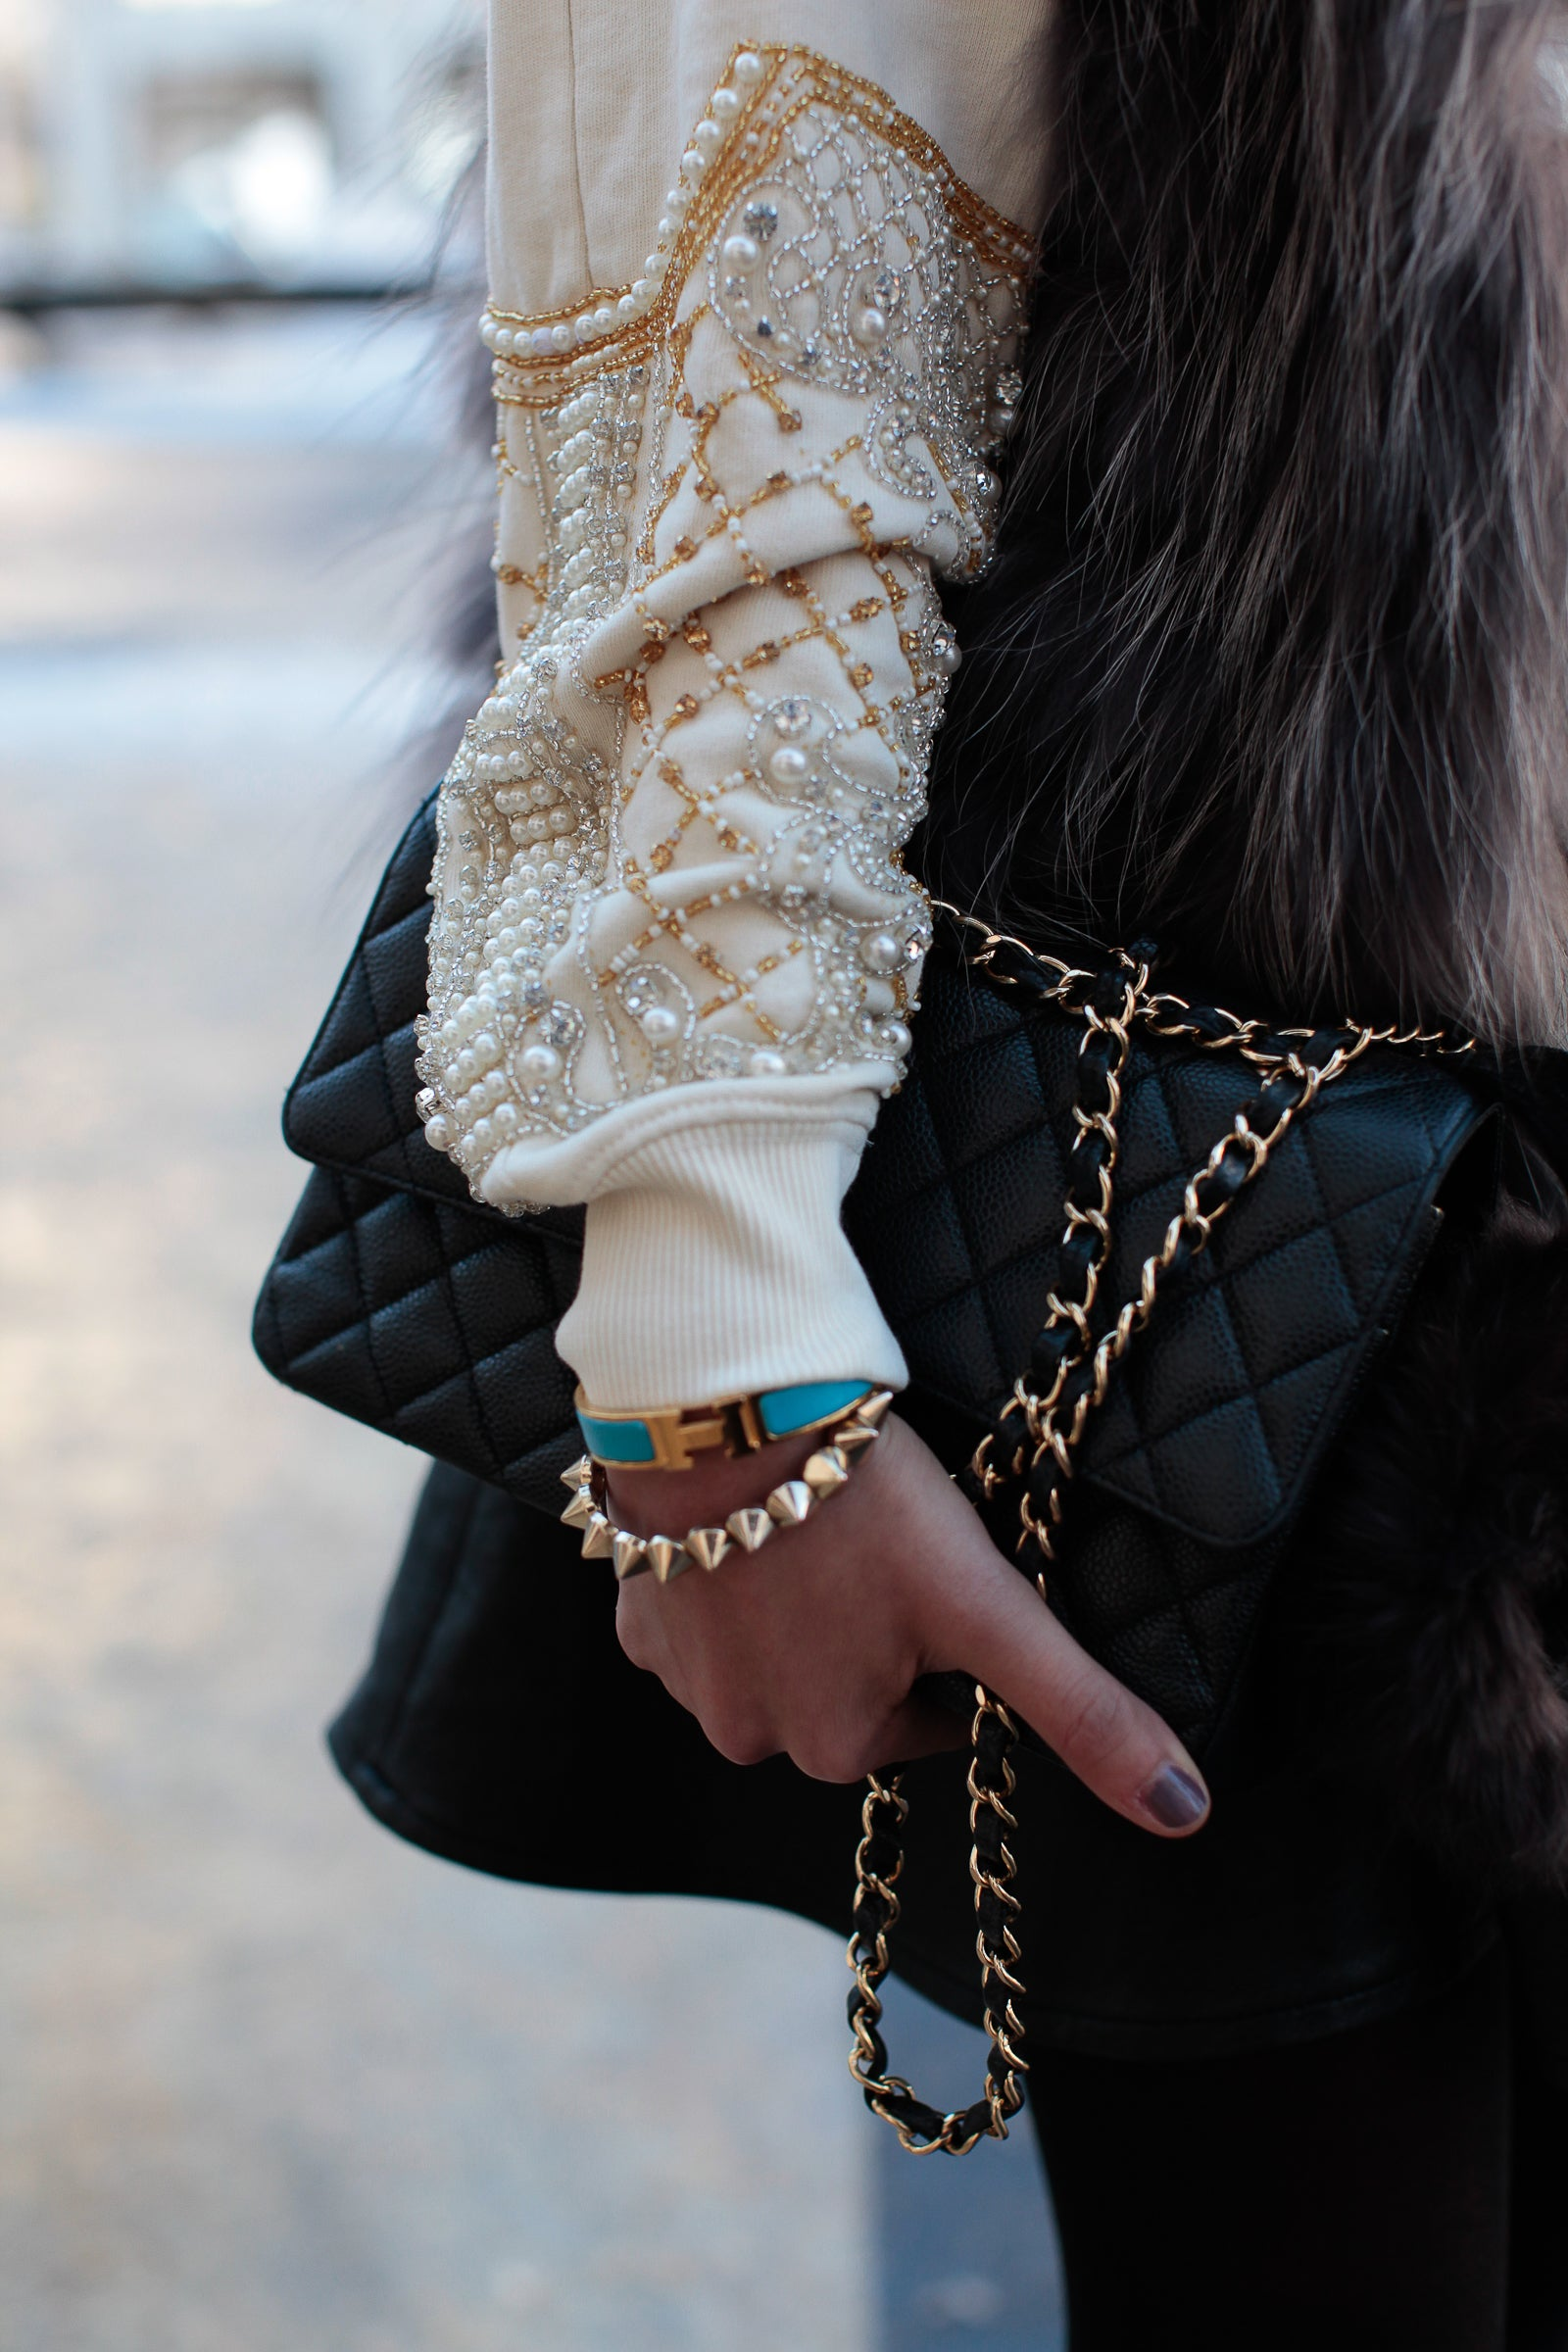 c31df794ef42 Accessories Street Style: Chanel Chic - Essence